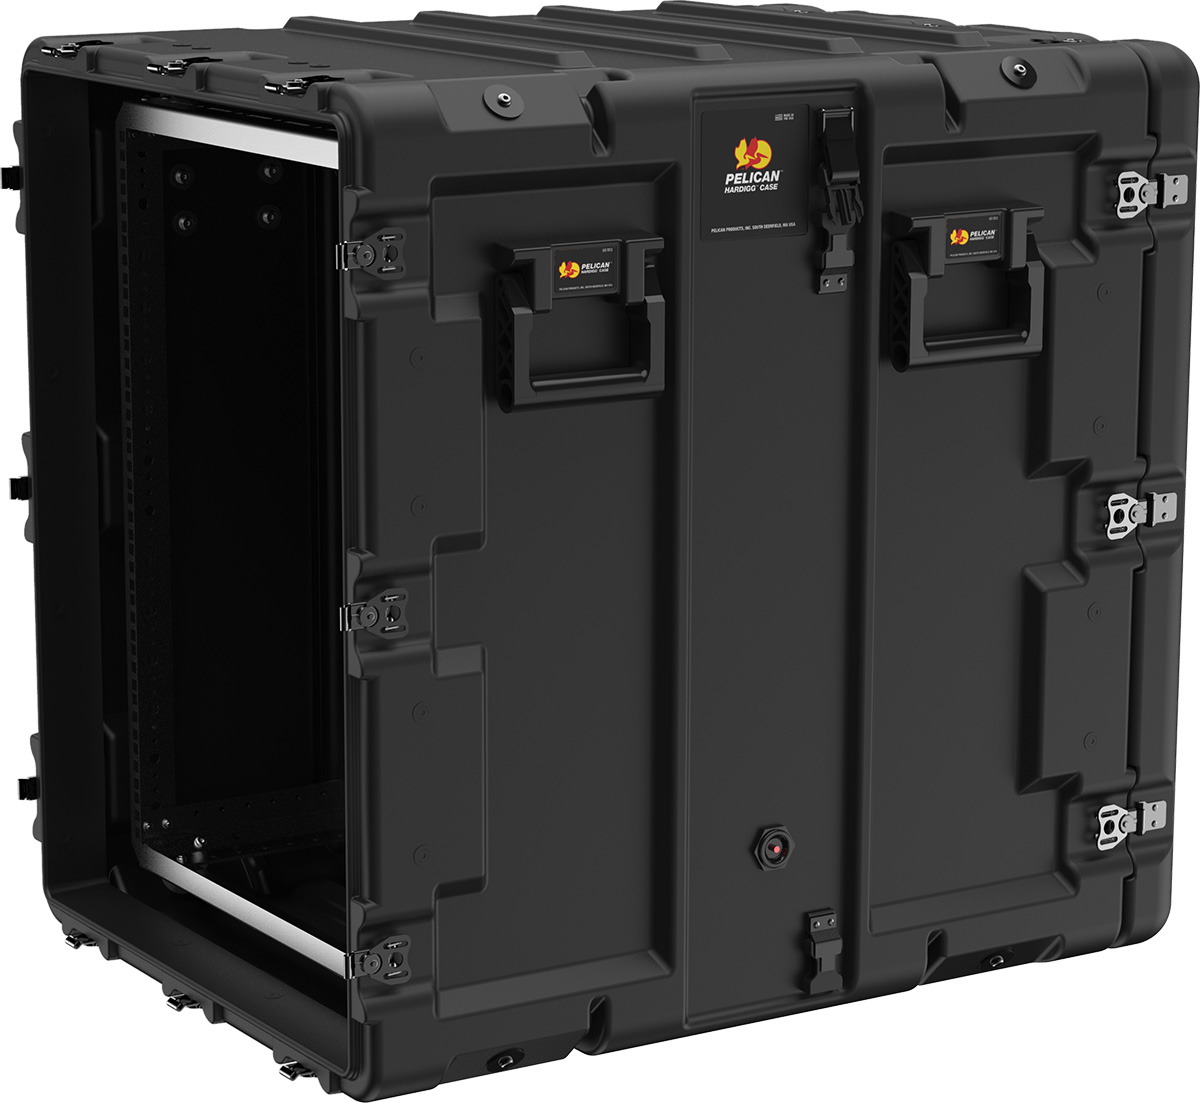 pelican 14u super v series rack mount case super-v-series-14u shock